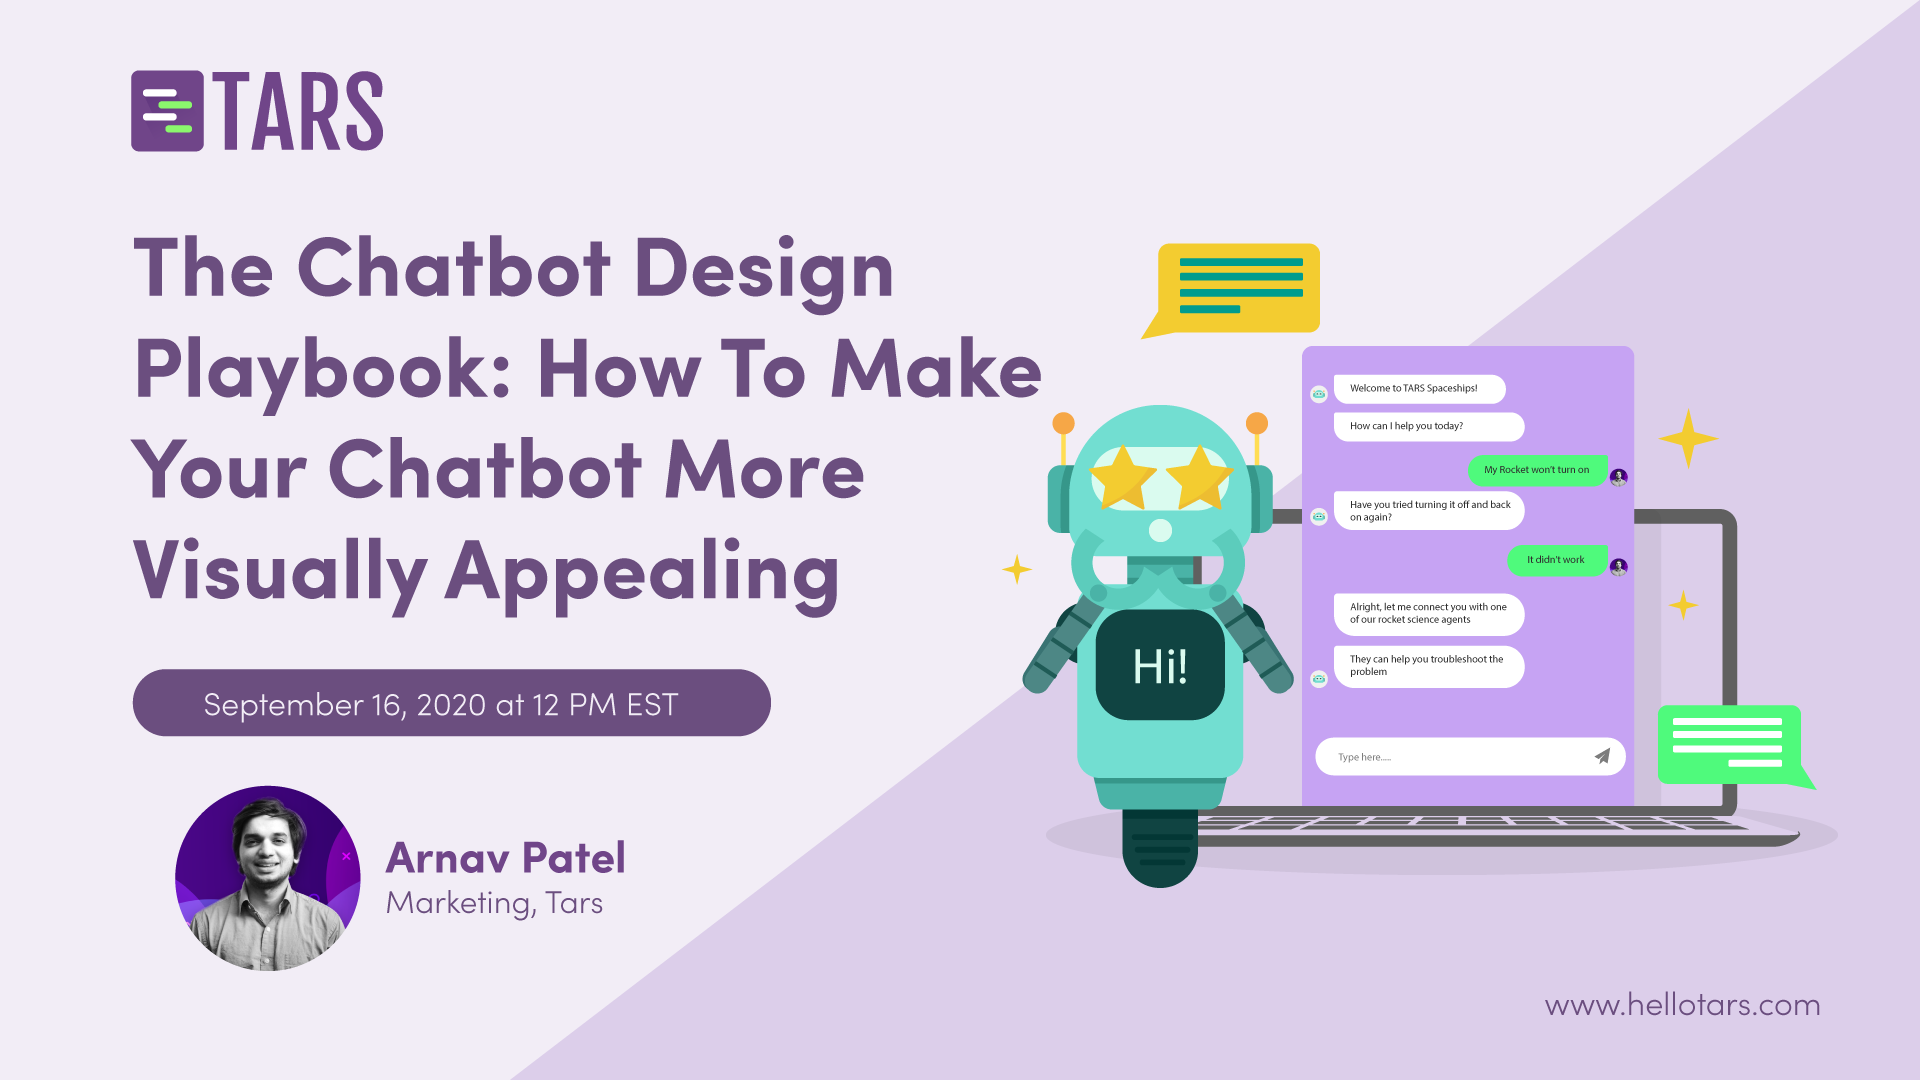 The-Chatbot-Design-Playbook-How-To-Make-